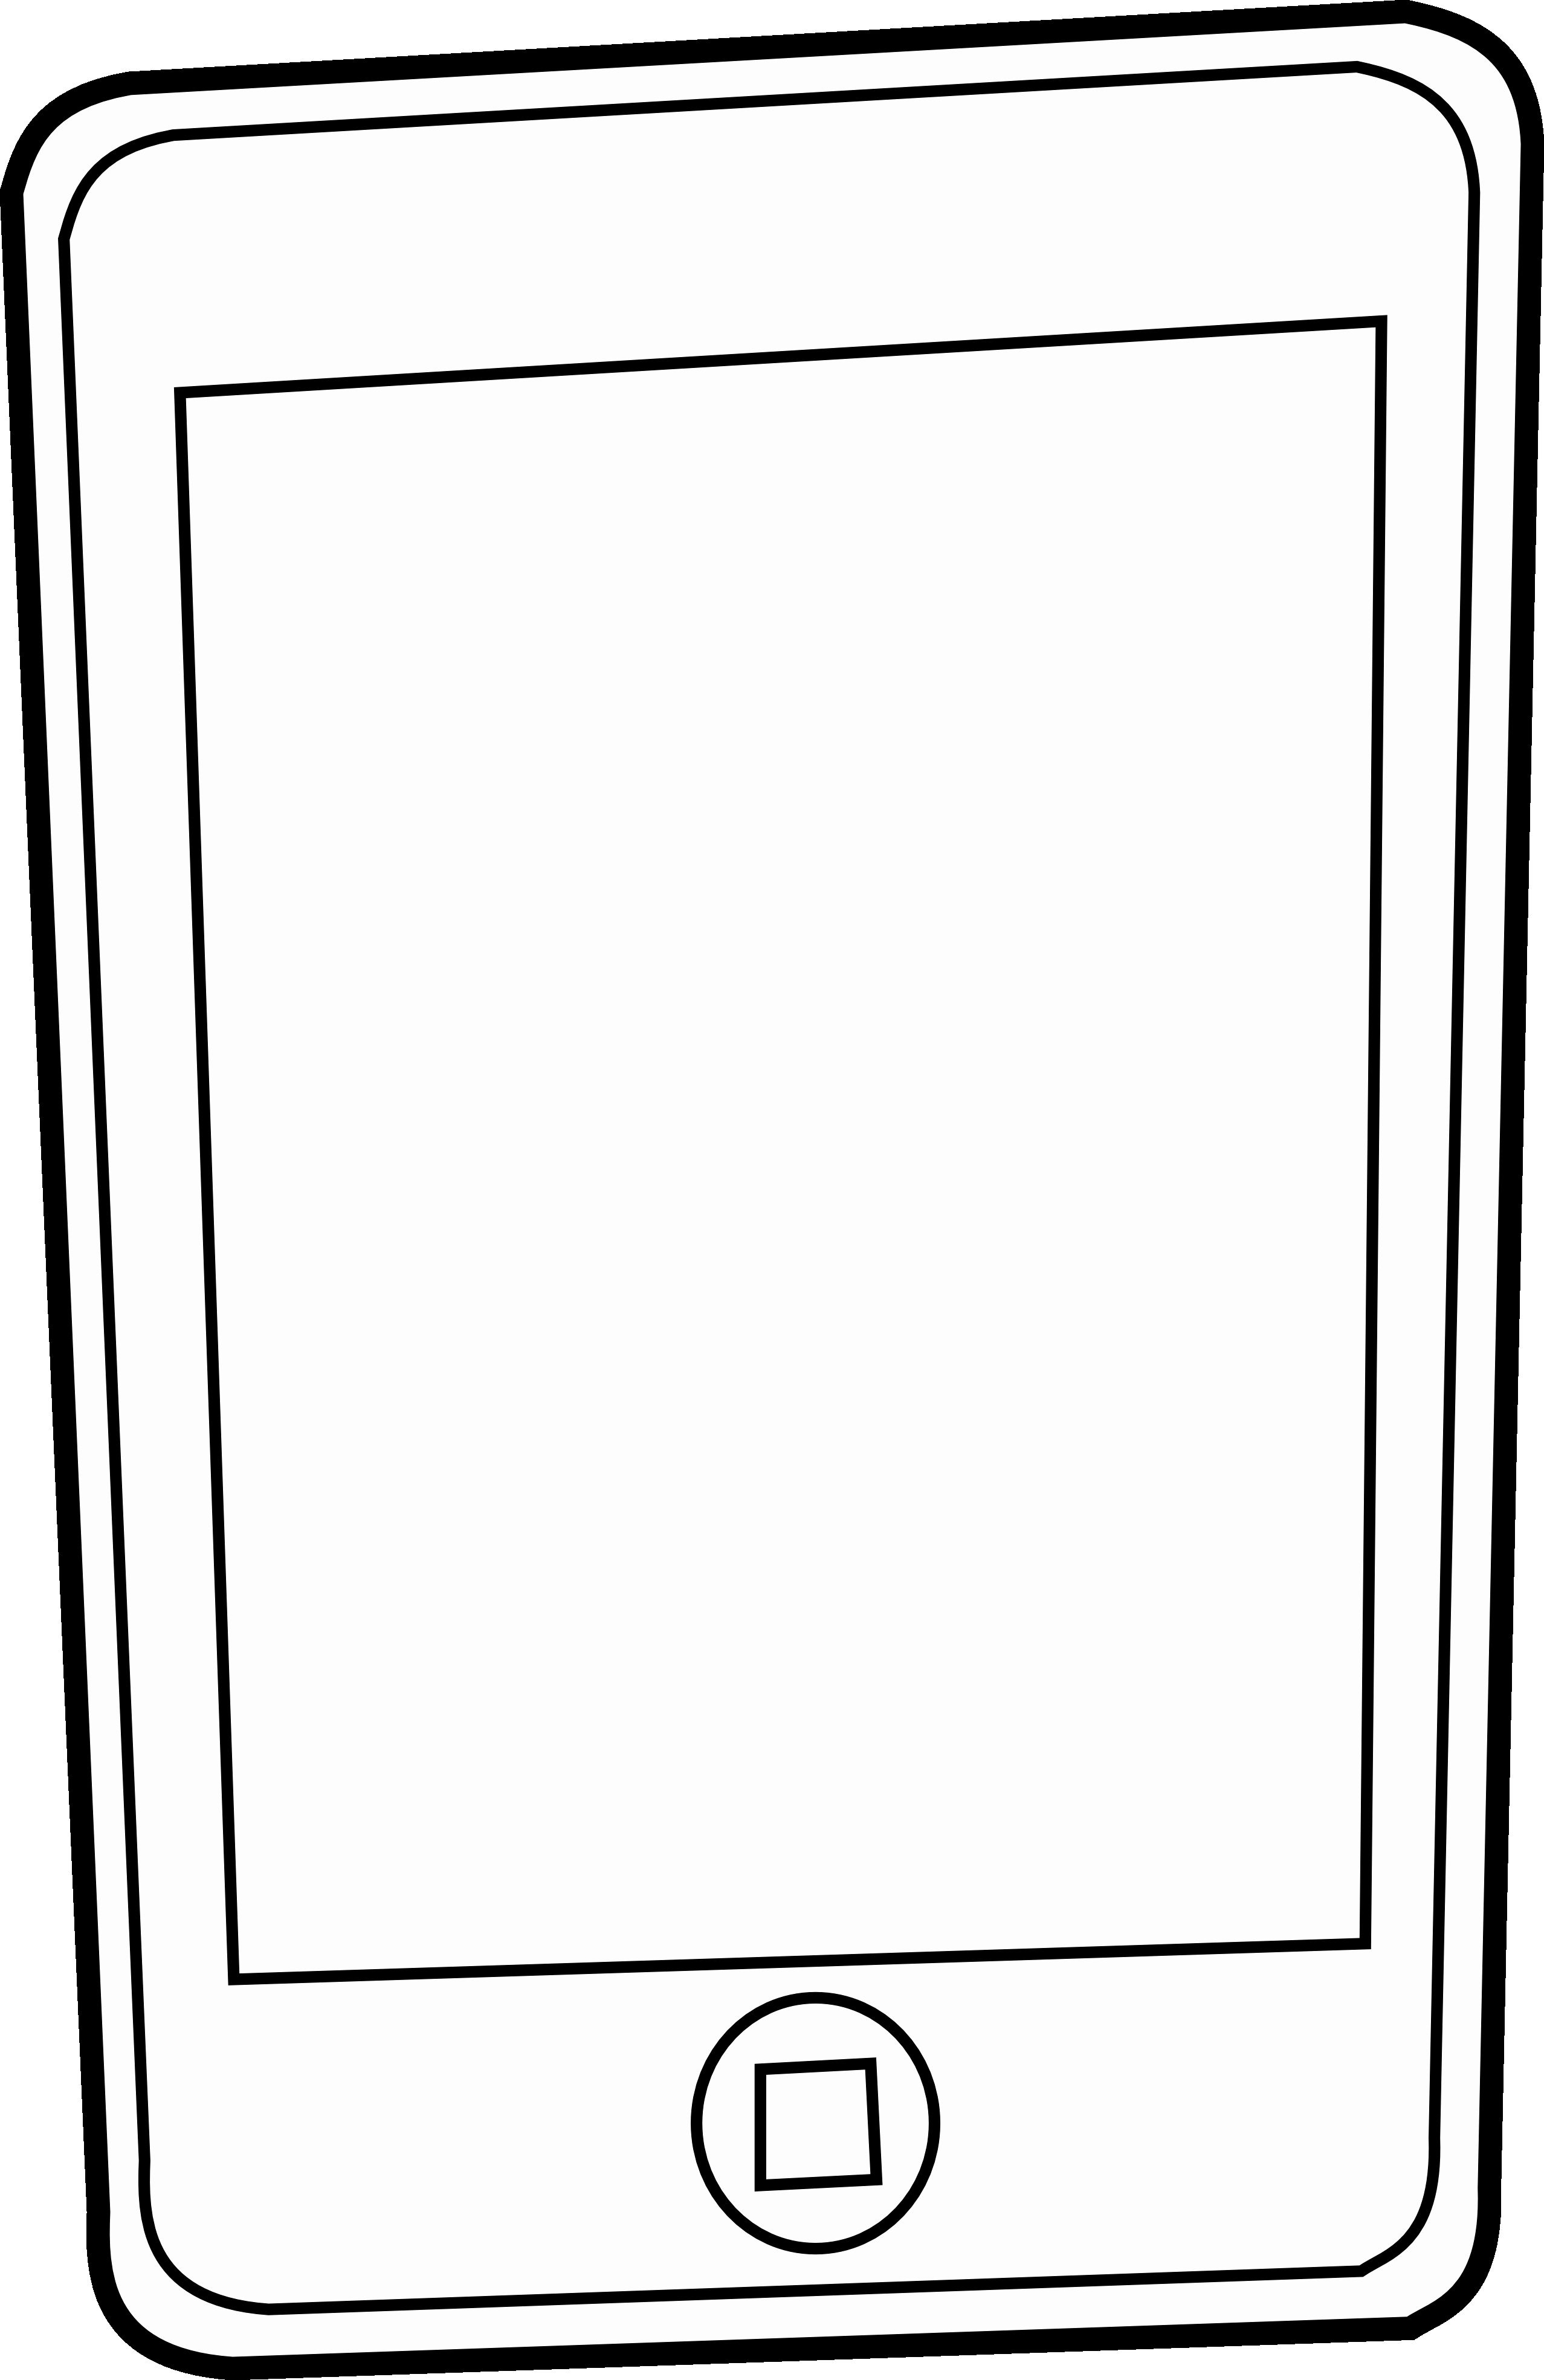 Cell Phone Coloring Page Lovely Free Clipart Cell Phone Cliparts Coloring Home Coloring Pages Clip Art Free Clip Art